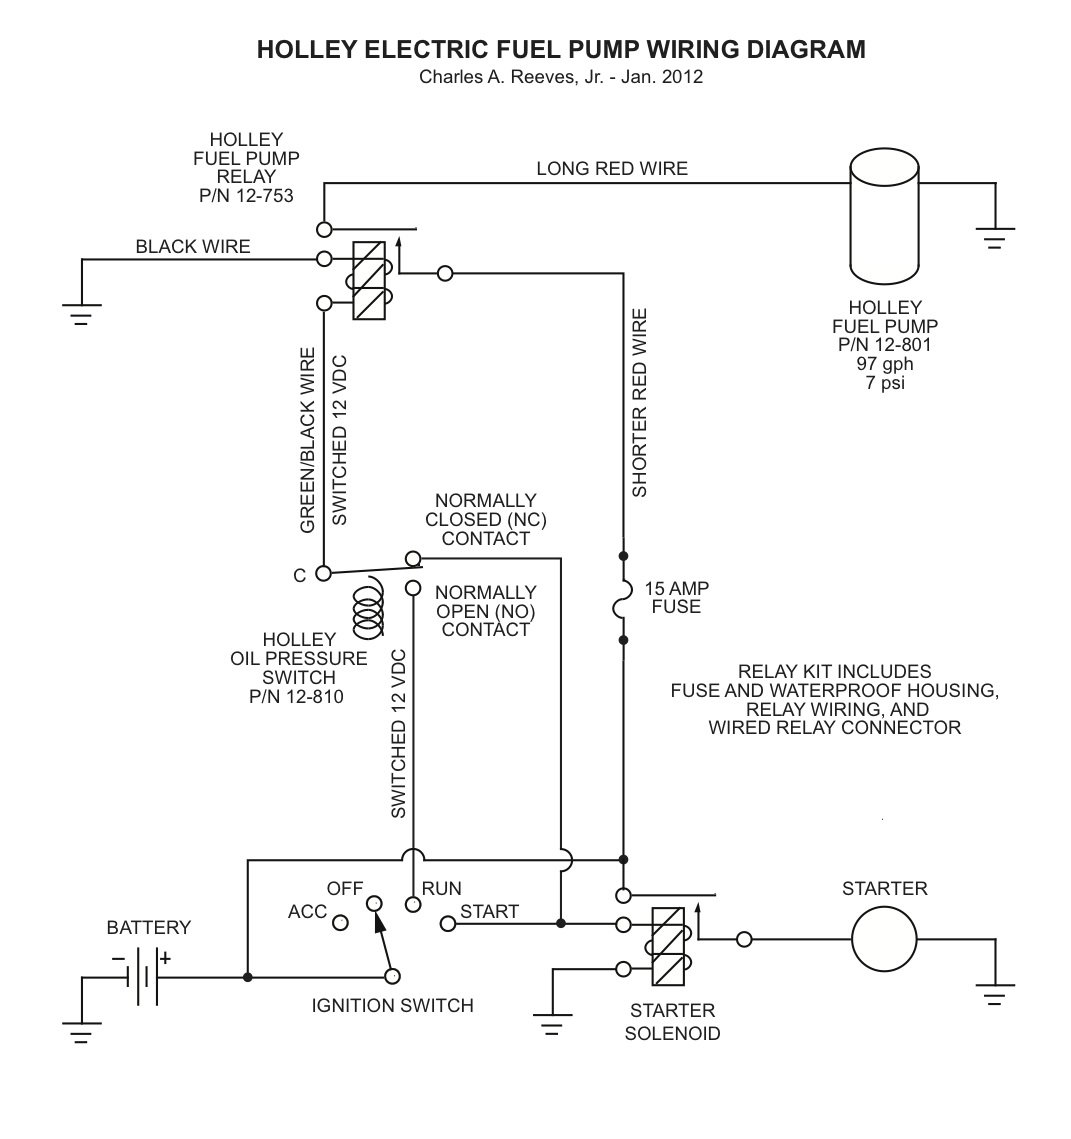 Installing a Holley Electric Fuel Pump in a 1966 Mustang | Ford Mustang  Forum | Holley Red Fuel Pump Wiring Diagram |  | All Ford Mustangs